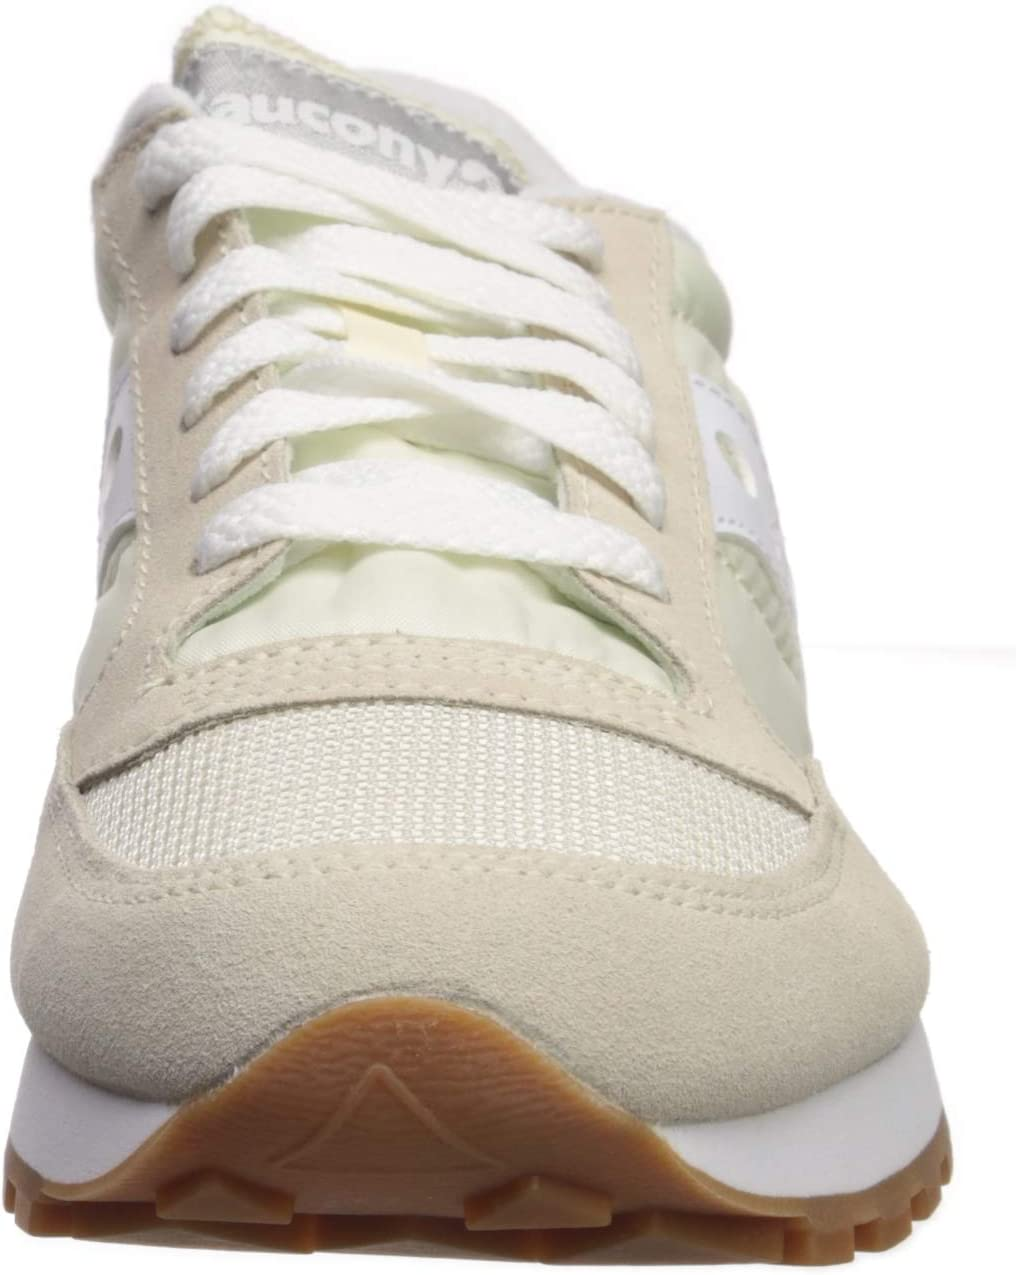 Saucony Dames Jazz Originele Vitnage Low-Top Sneakers White Blanco 93